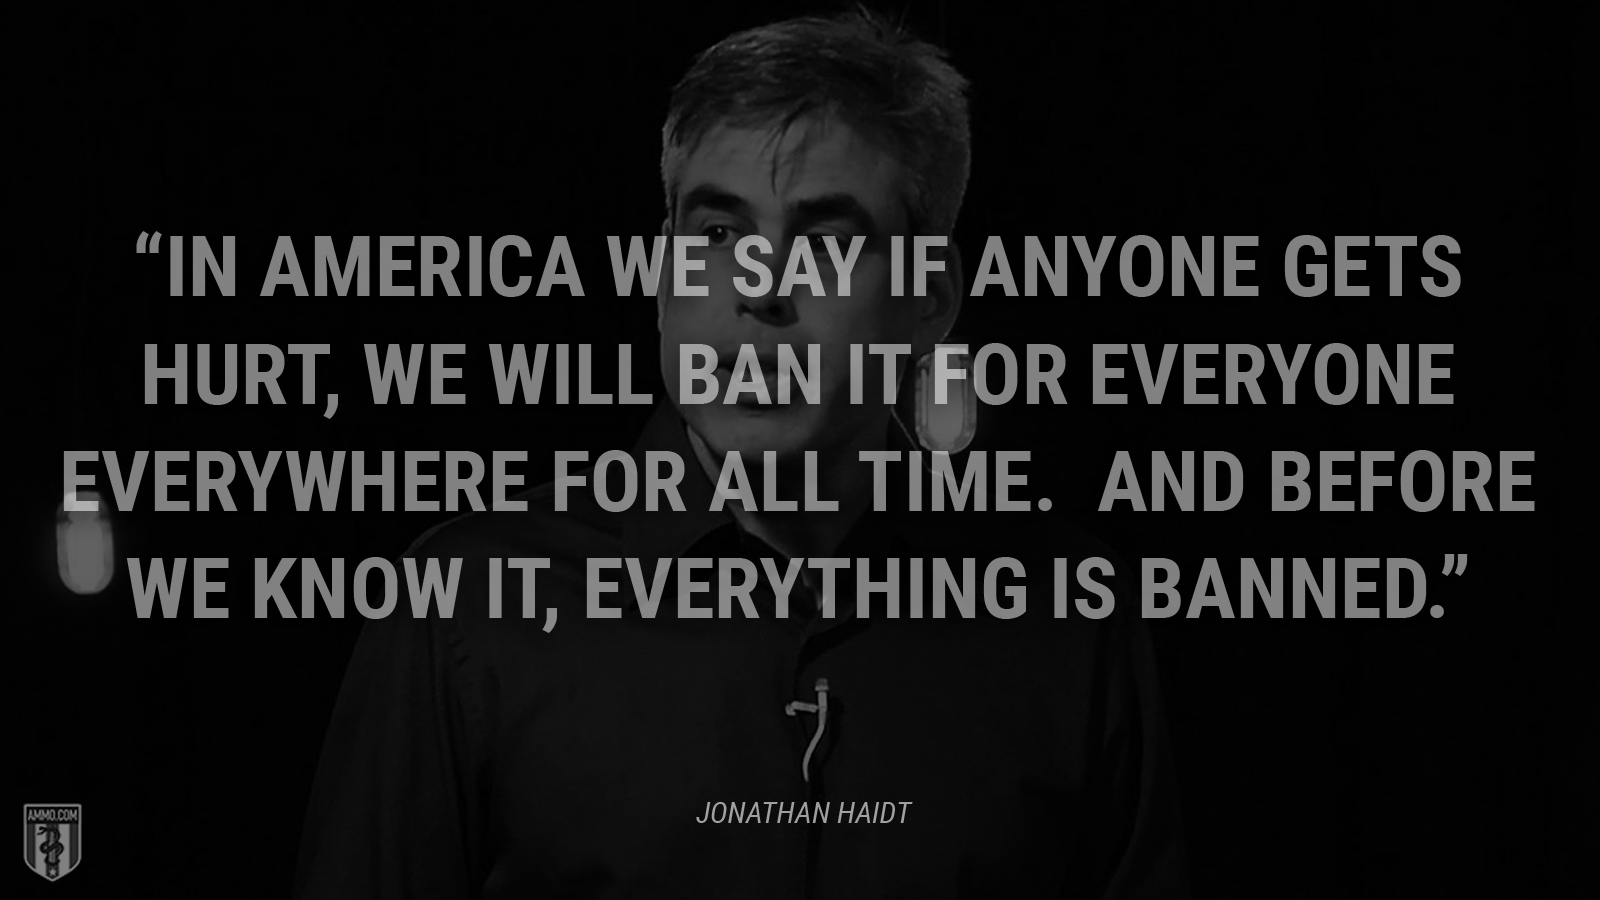 """""""In America we say if anyone gets hurt, we will ban it for everyone everywhere for all time. And before we know it, everything is banned."""" - Jonathan Haidt"""